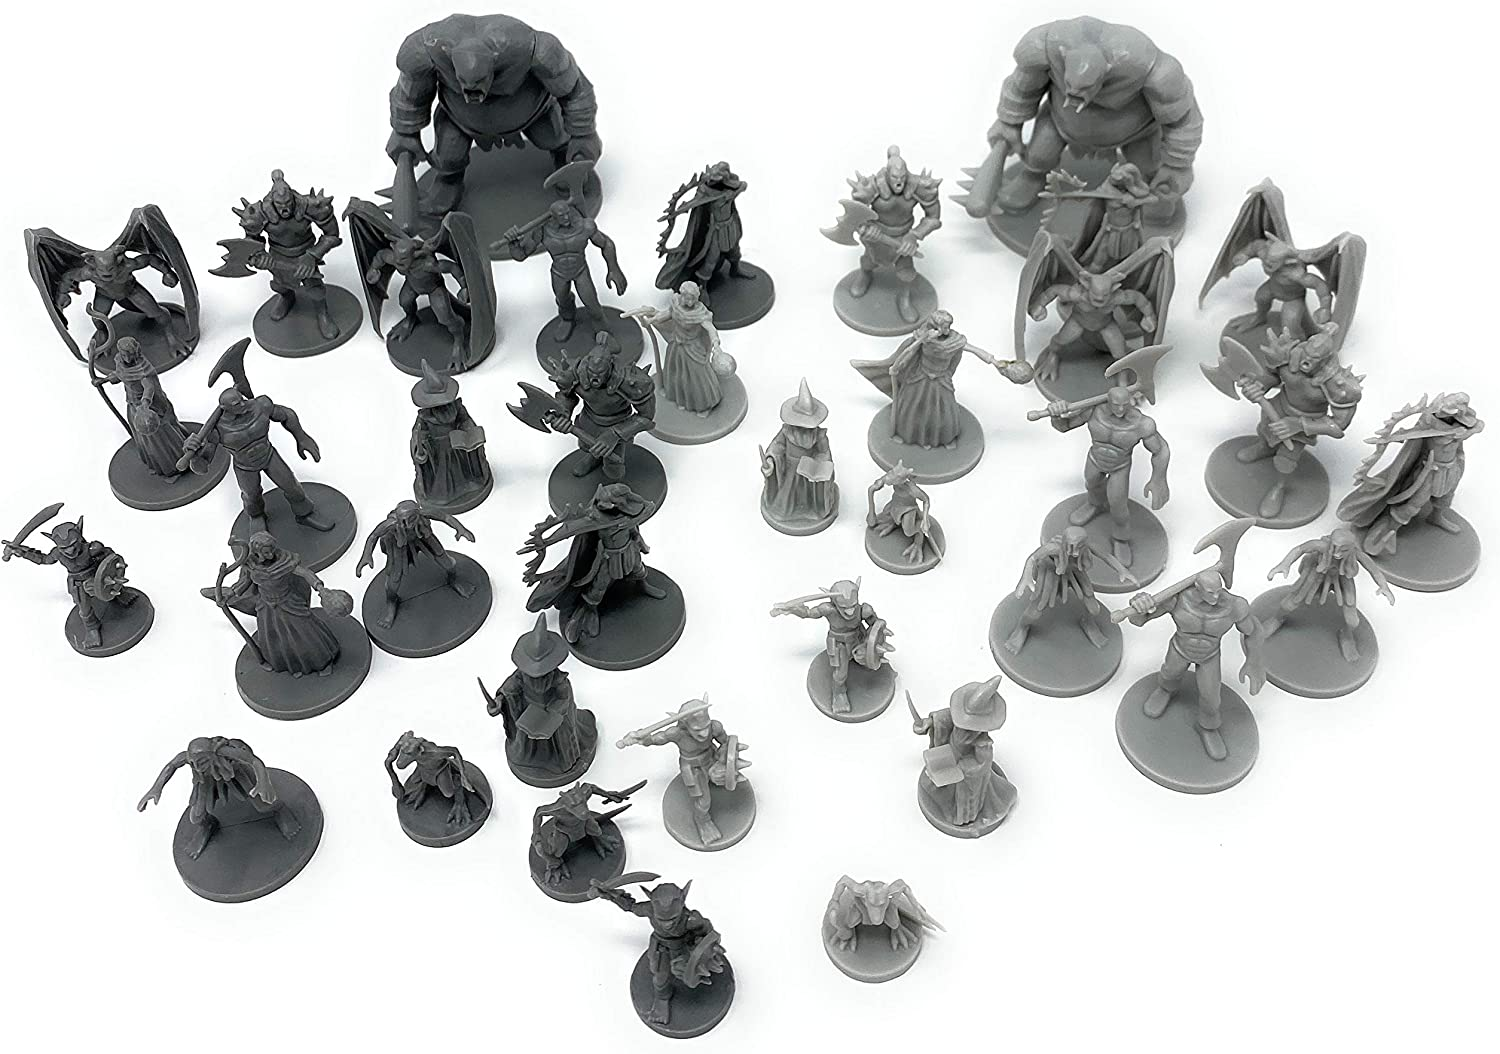 Mixed Lot Dungeons /& Dragons Marvelous DND Miniatures War Board Game Figures Toy